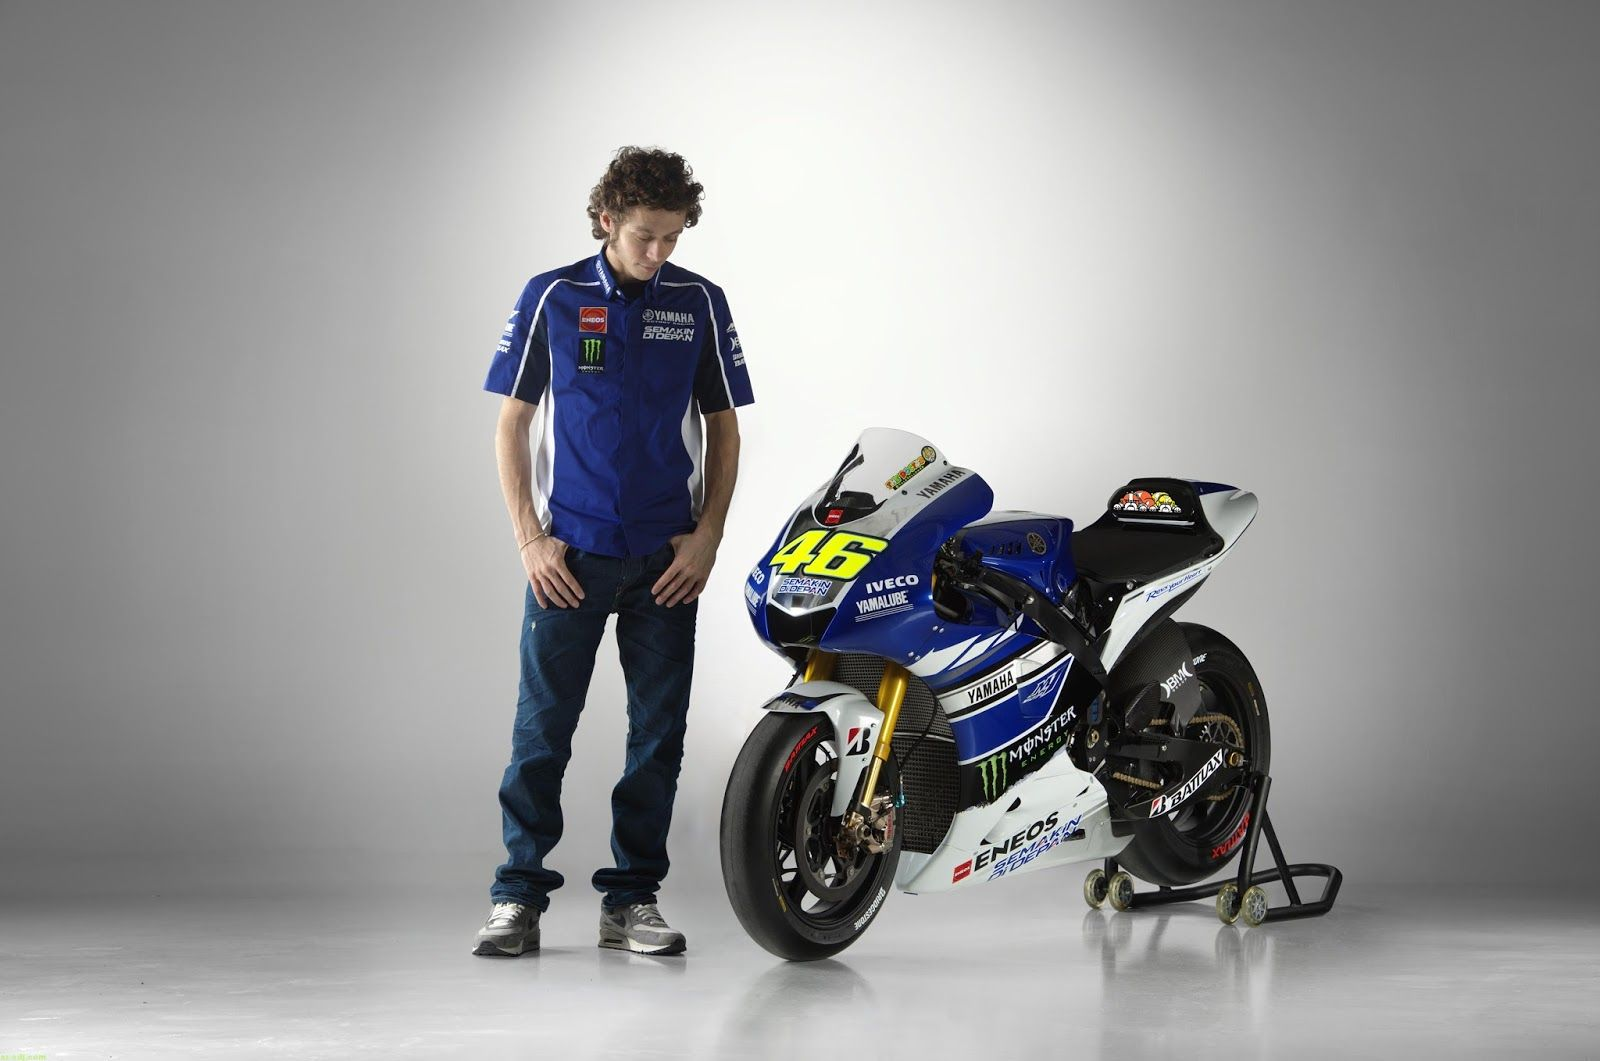 Wallpaper valentino rossi group 19201200 wallpaper valentino rossi wallpaper valentino rossi group 19201200 wallpaper valentino rossi 35 wallpapers adorable voltagebd Choice Image